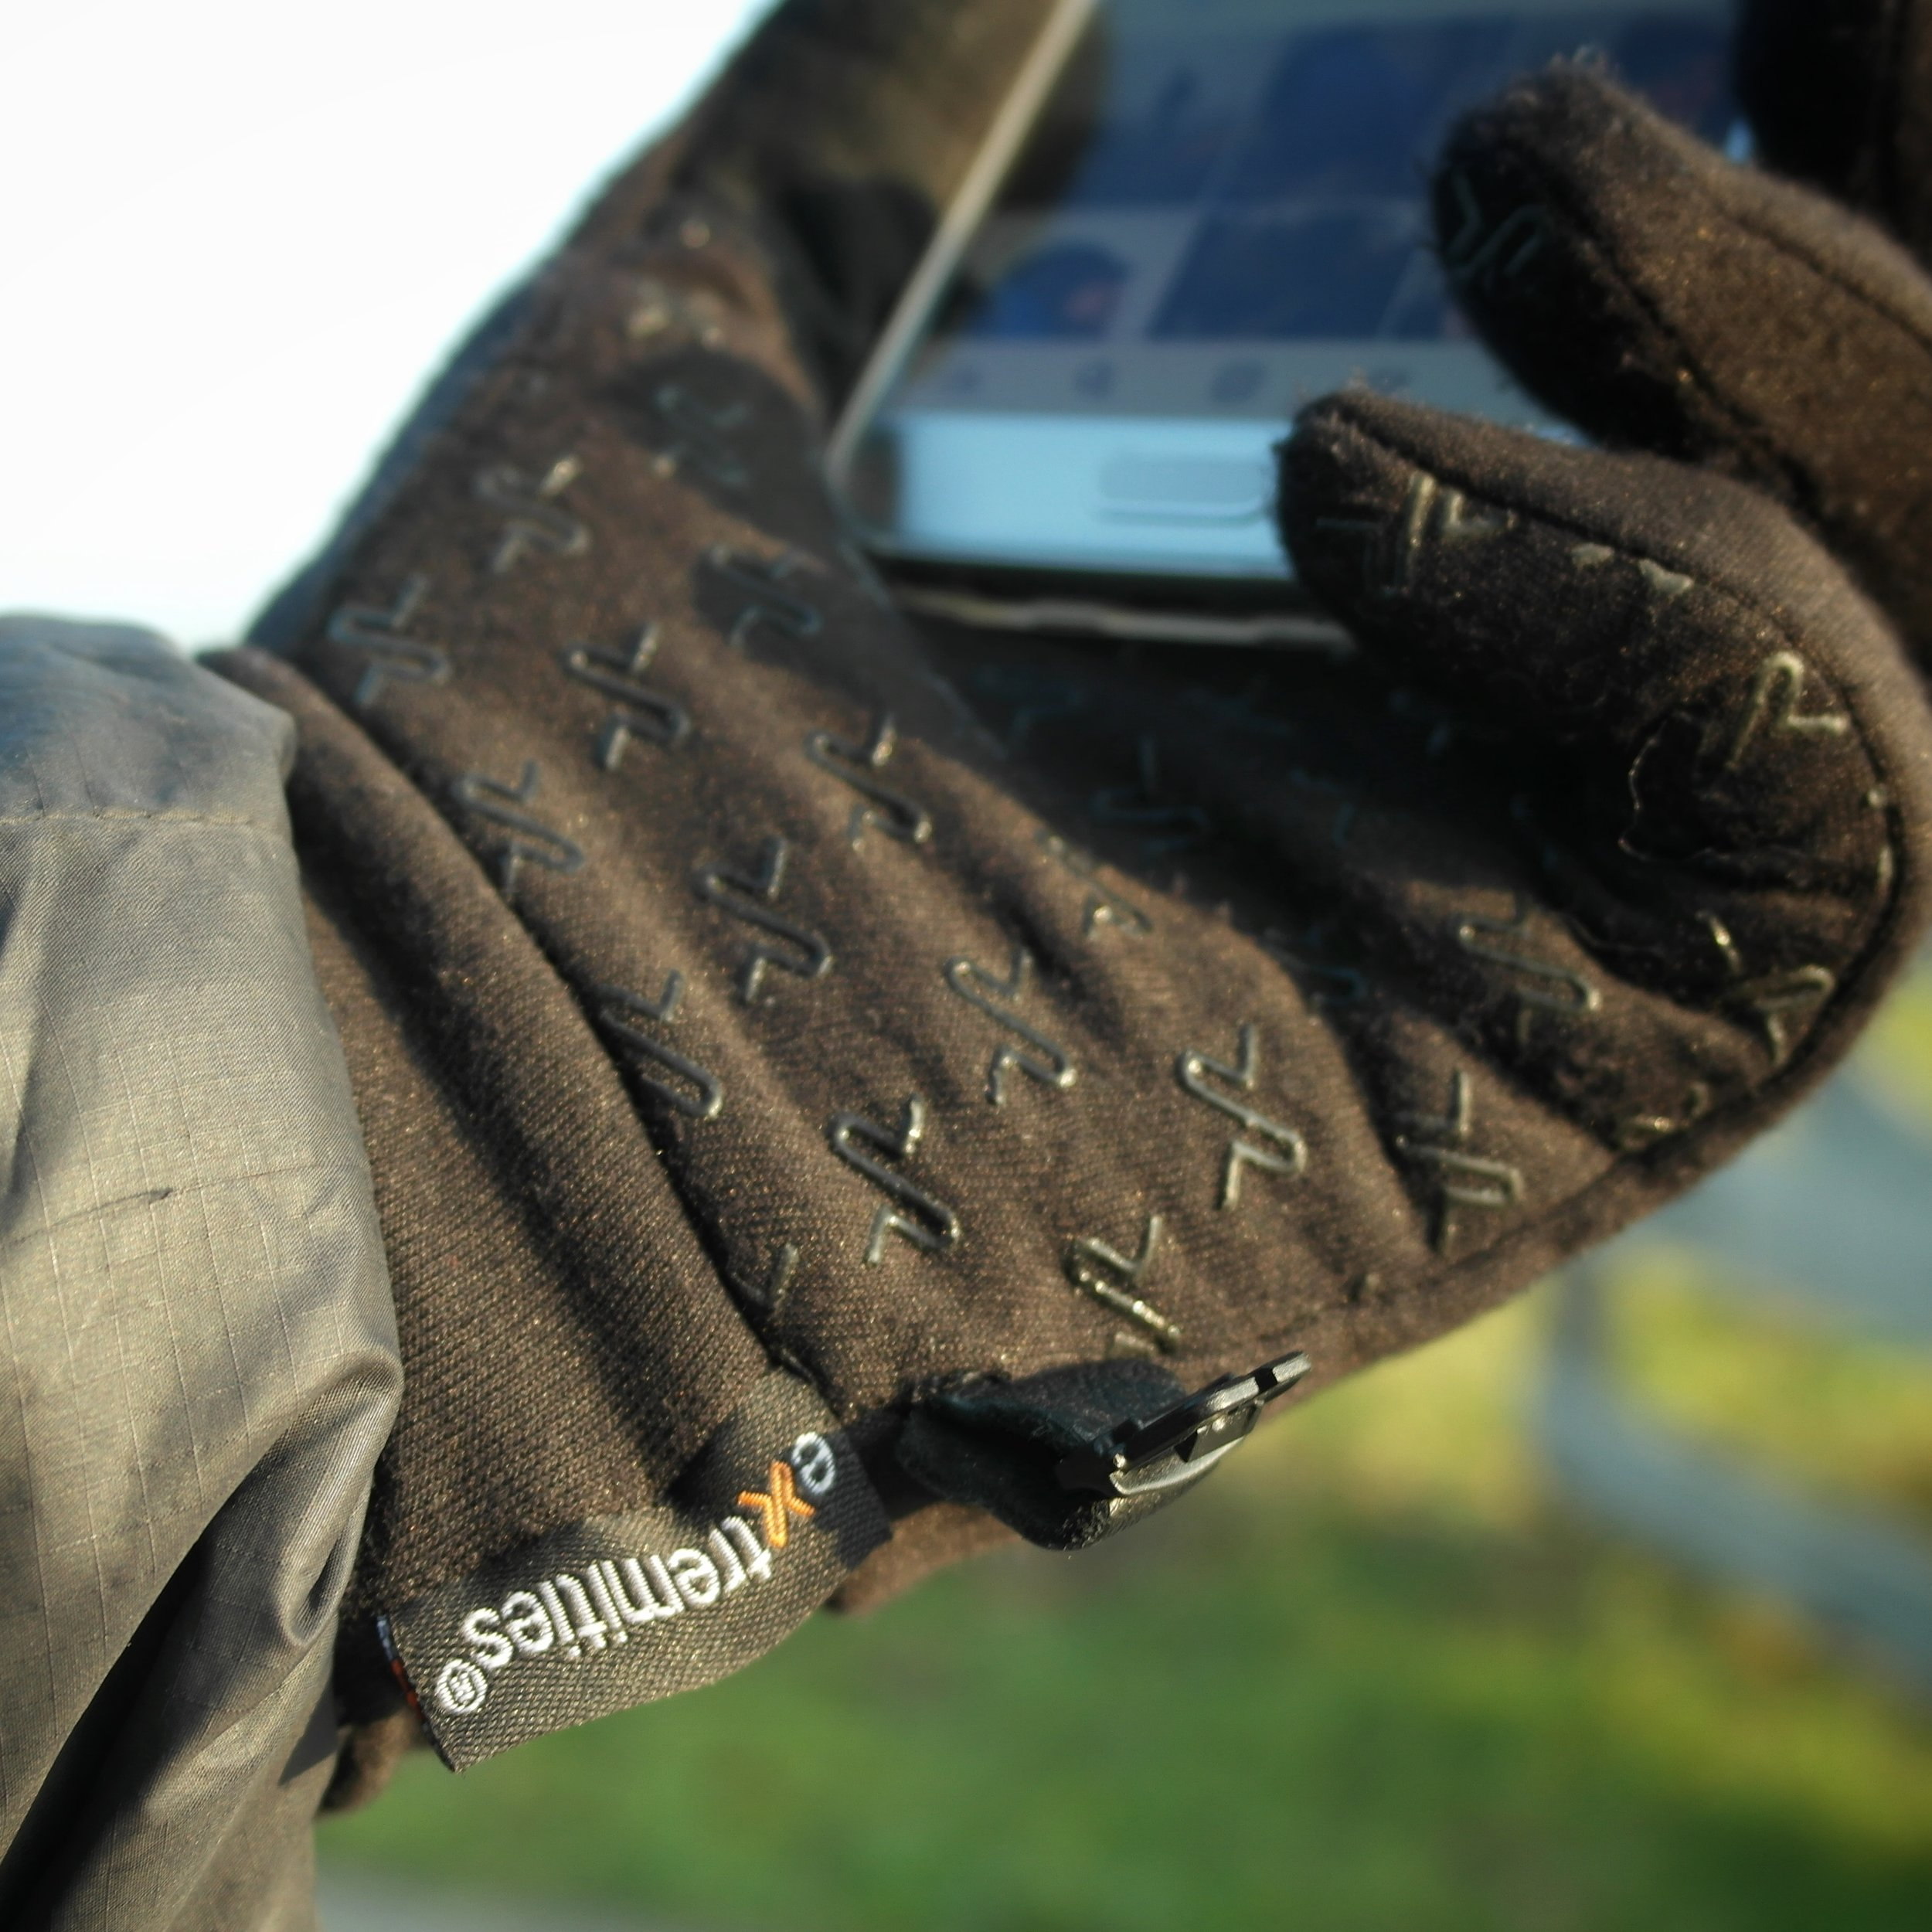 The sticky grip is really marvelous addition to this great glove. Allowing all items to stay firmly in your hand.